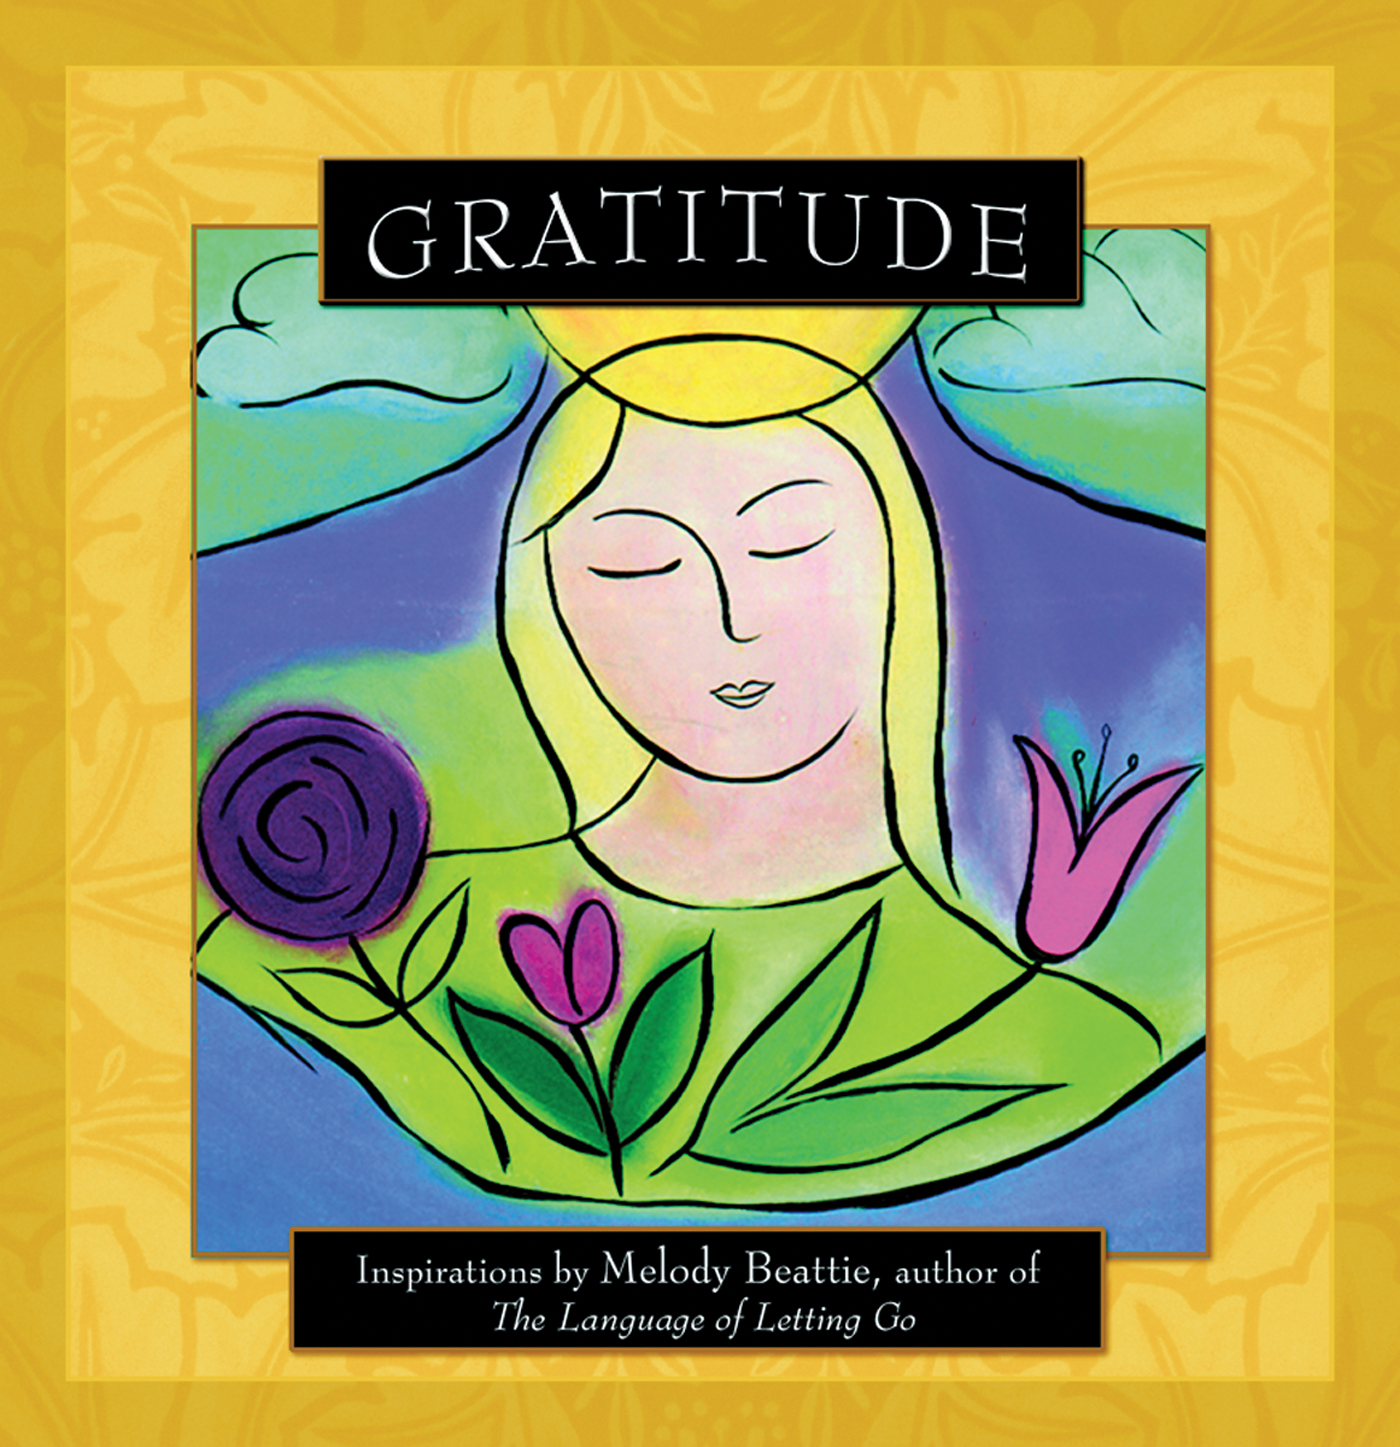 Gratitude By: Melody Beattie